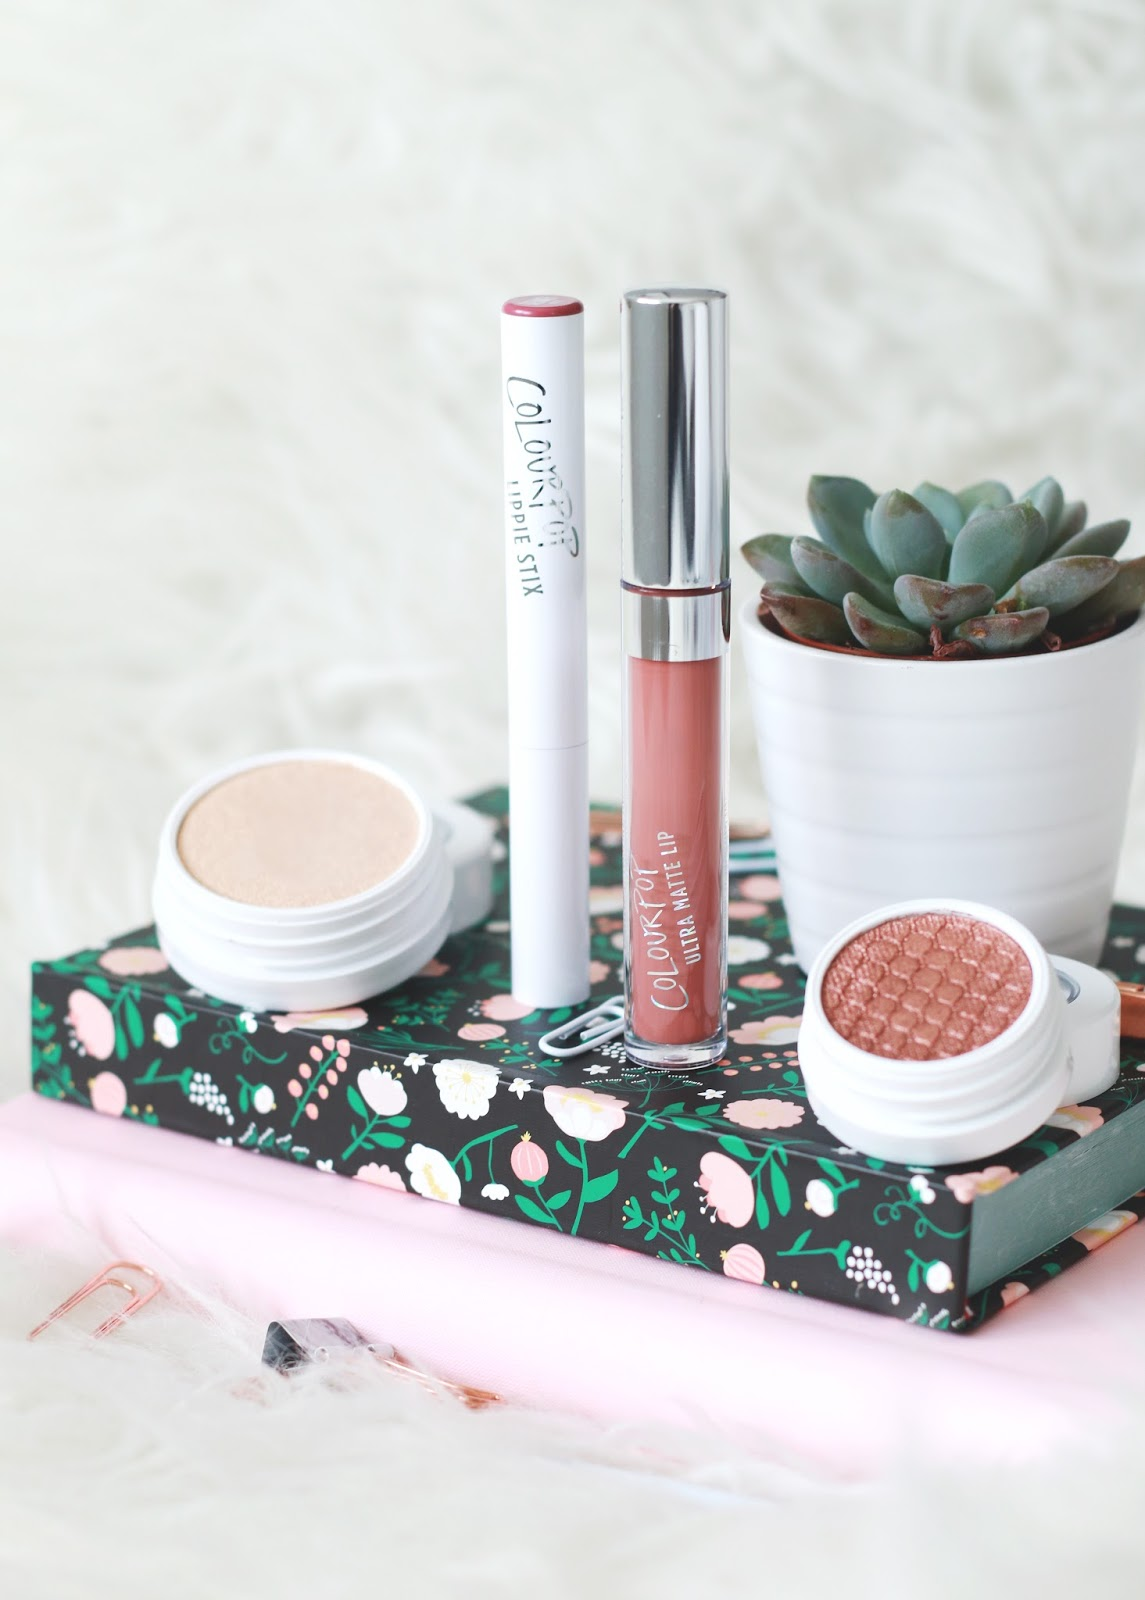 forever september, forever september blogger, beauty blogger, fashion blogger, lifestyle blogger, makeup, colourpop, liquid lipsticks, eyeshadow, highlighter, colourpop cosmetics, haul, makeup haul, beauty haul, lipstick